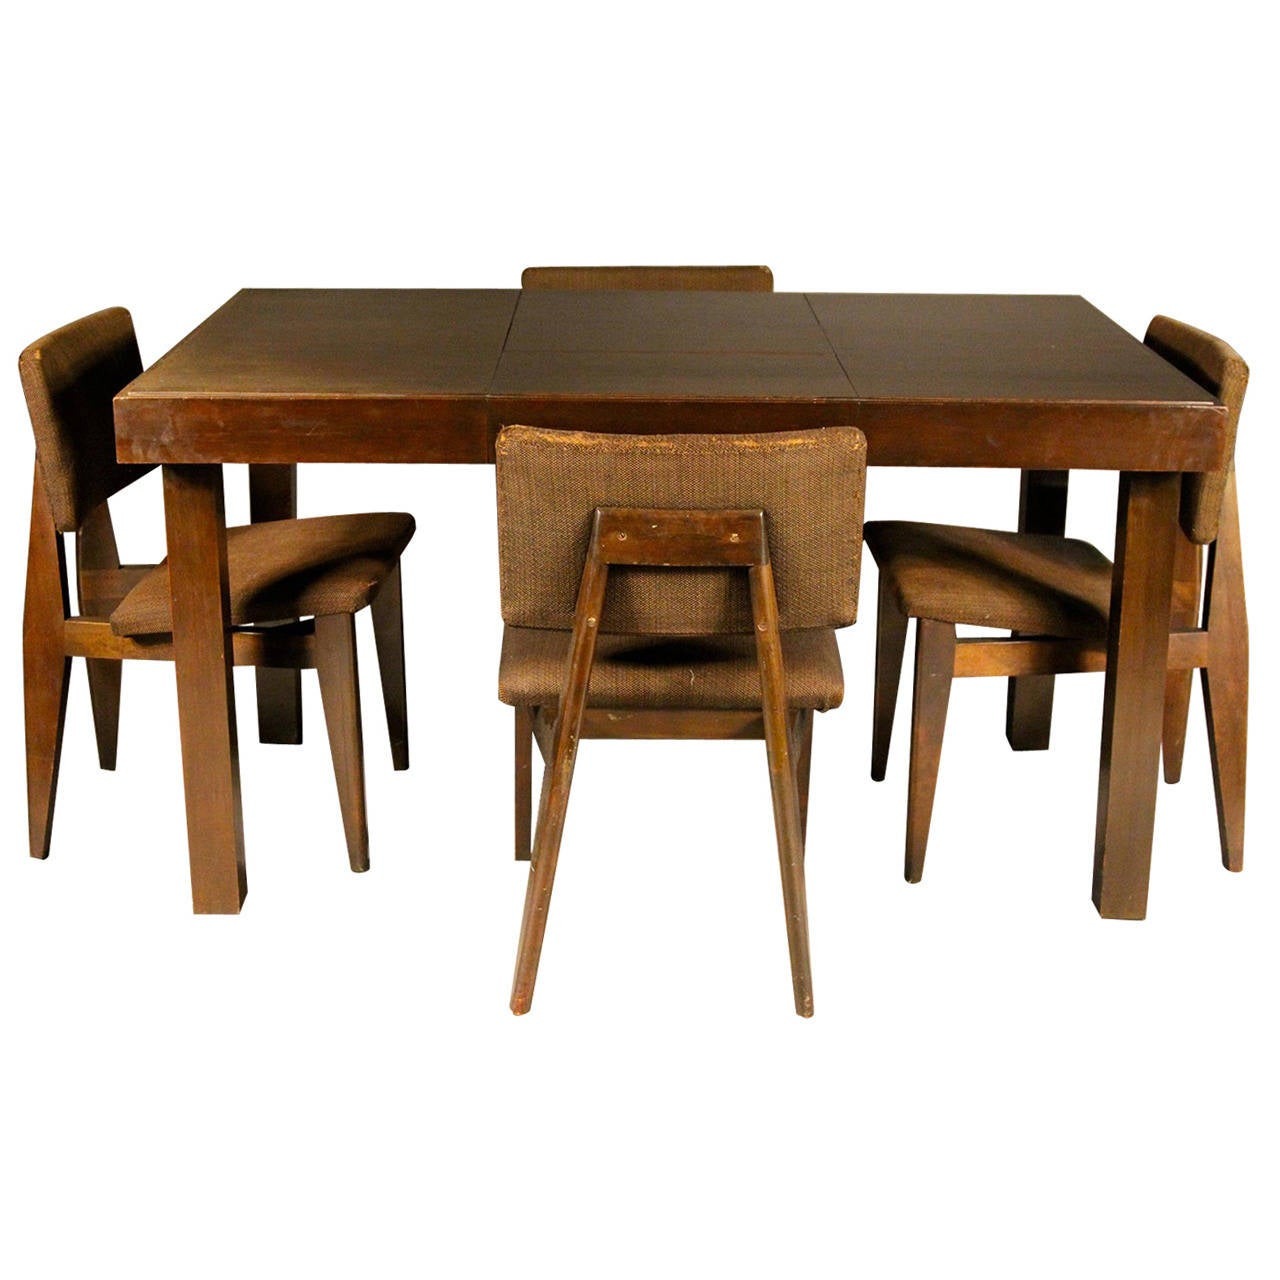 George Nelson for Herman Miller Prima Vera Table with